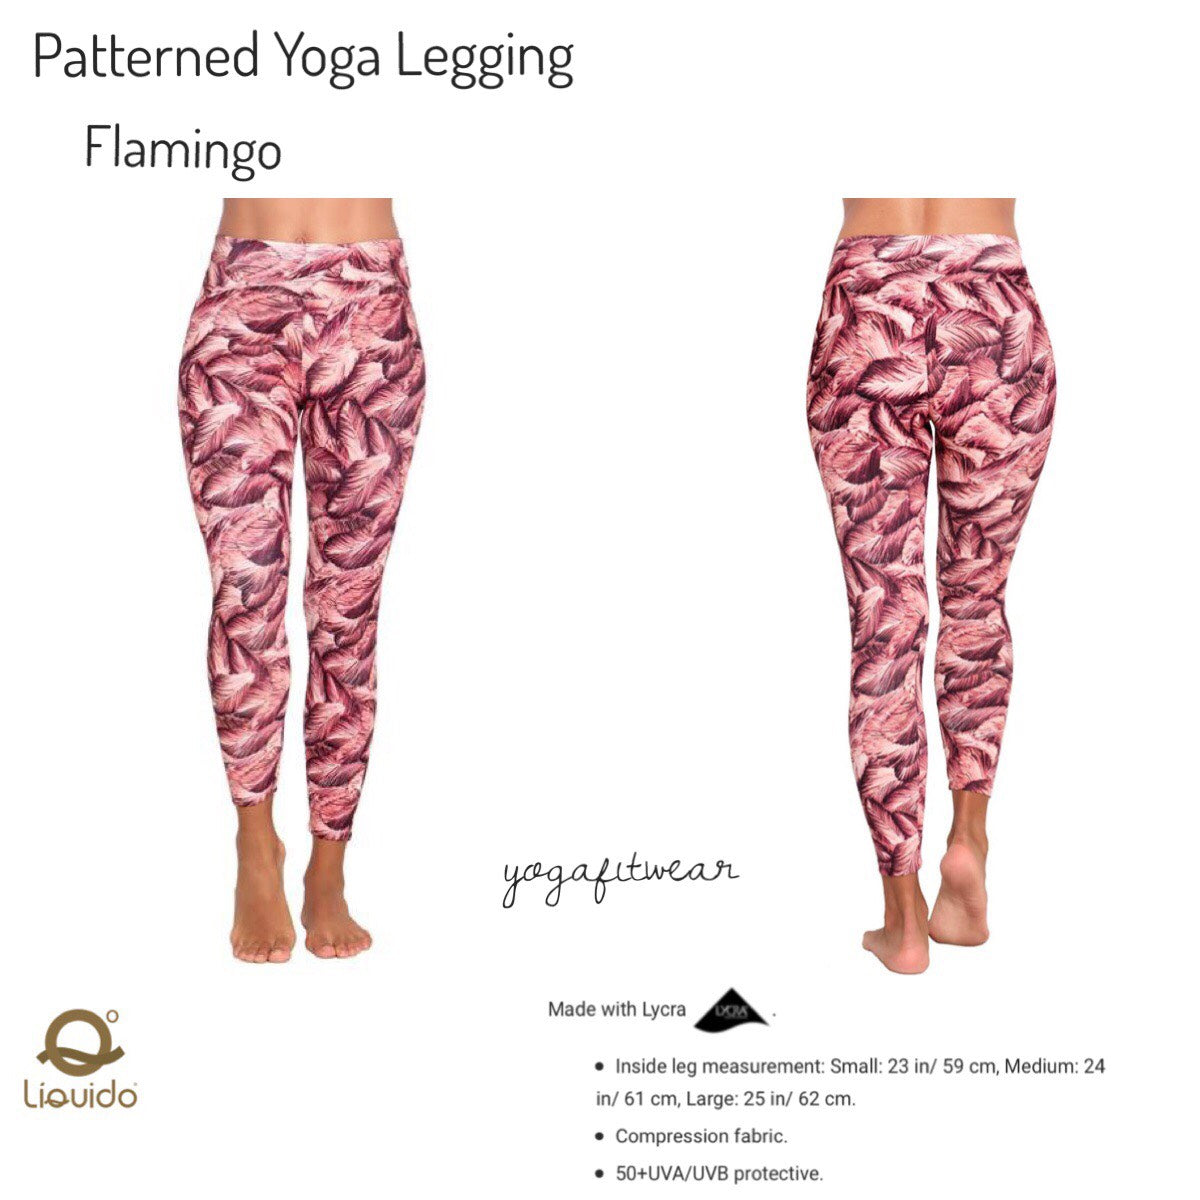 Liquido - Patterned Yoga Legging  : Flamingo (LQ00511)